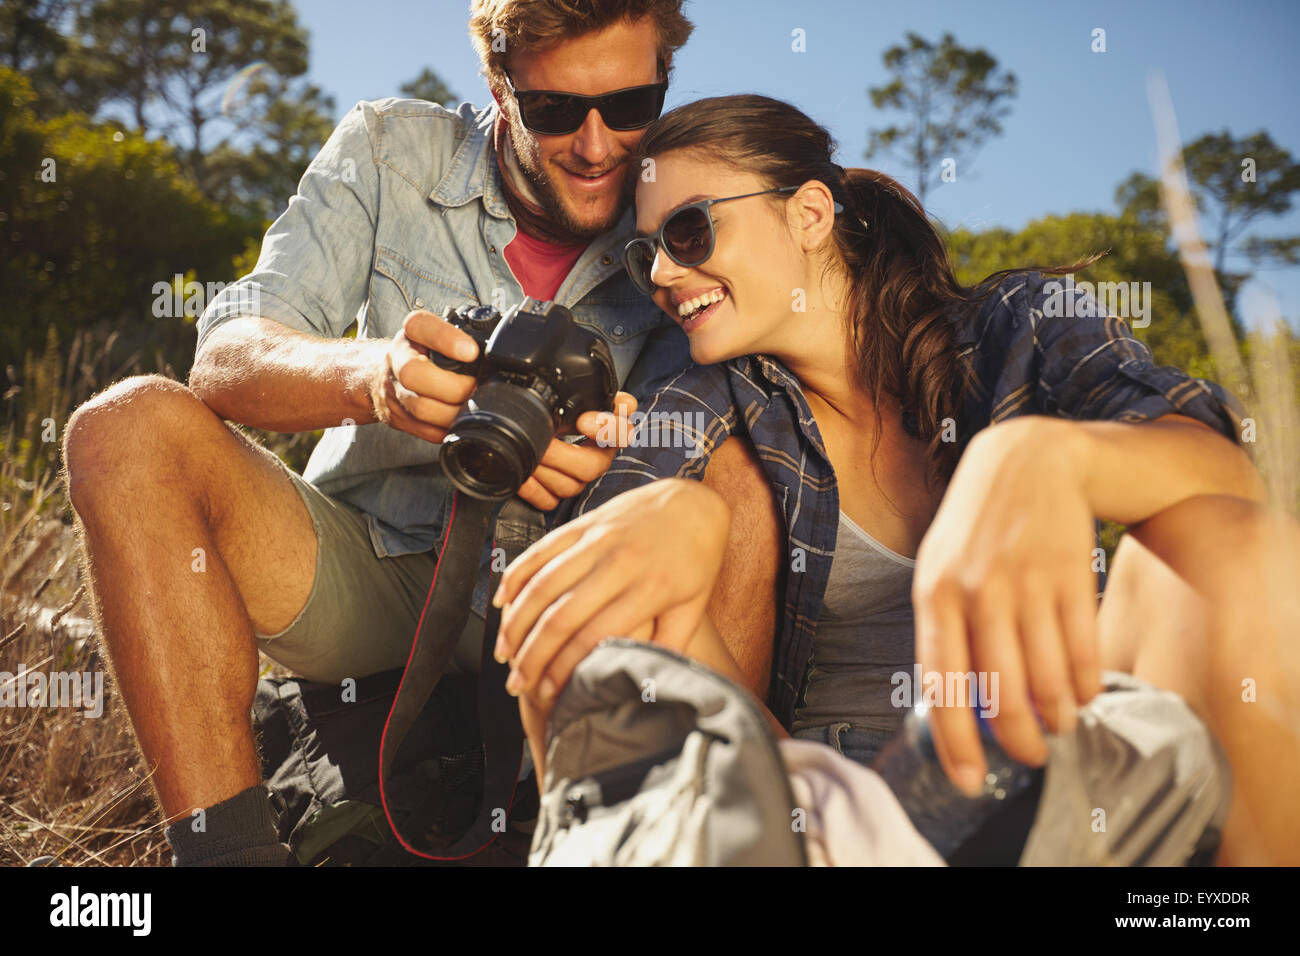 Hiker couple looking taken picture on digital camera during journey outdoor on vacation. Smiling couple taking a - Stock Image